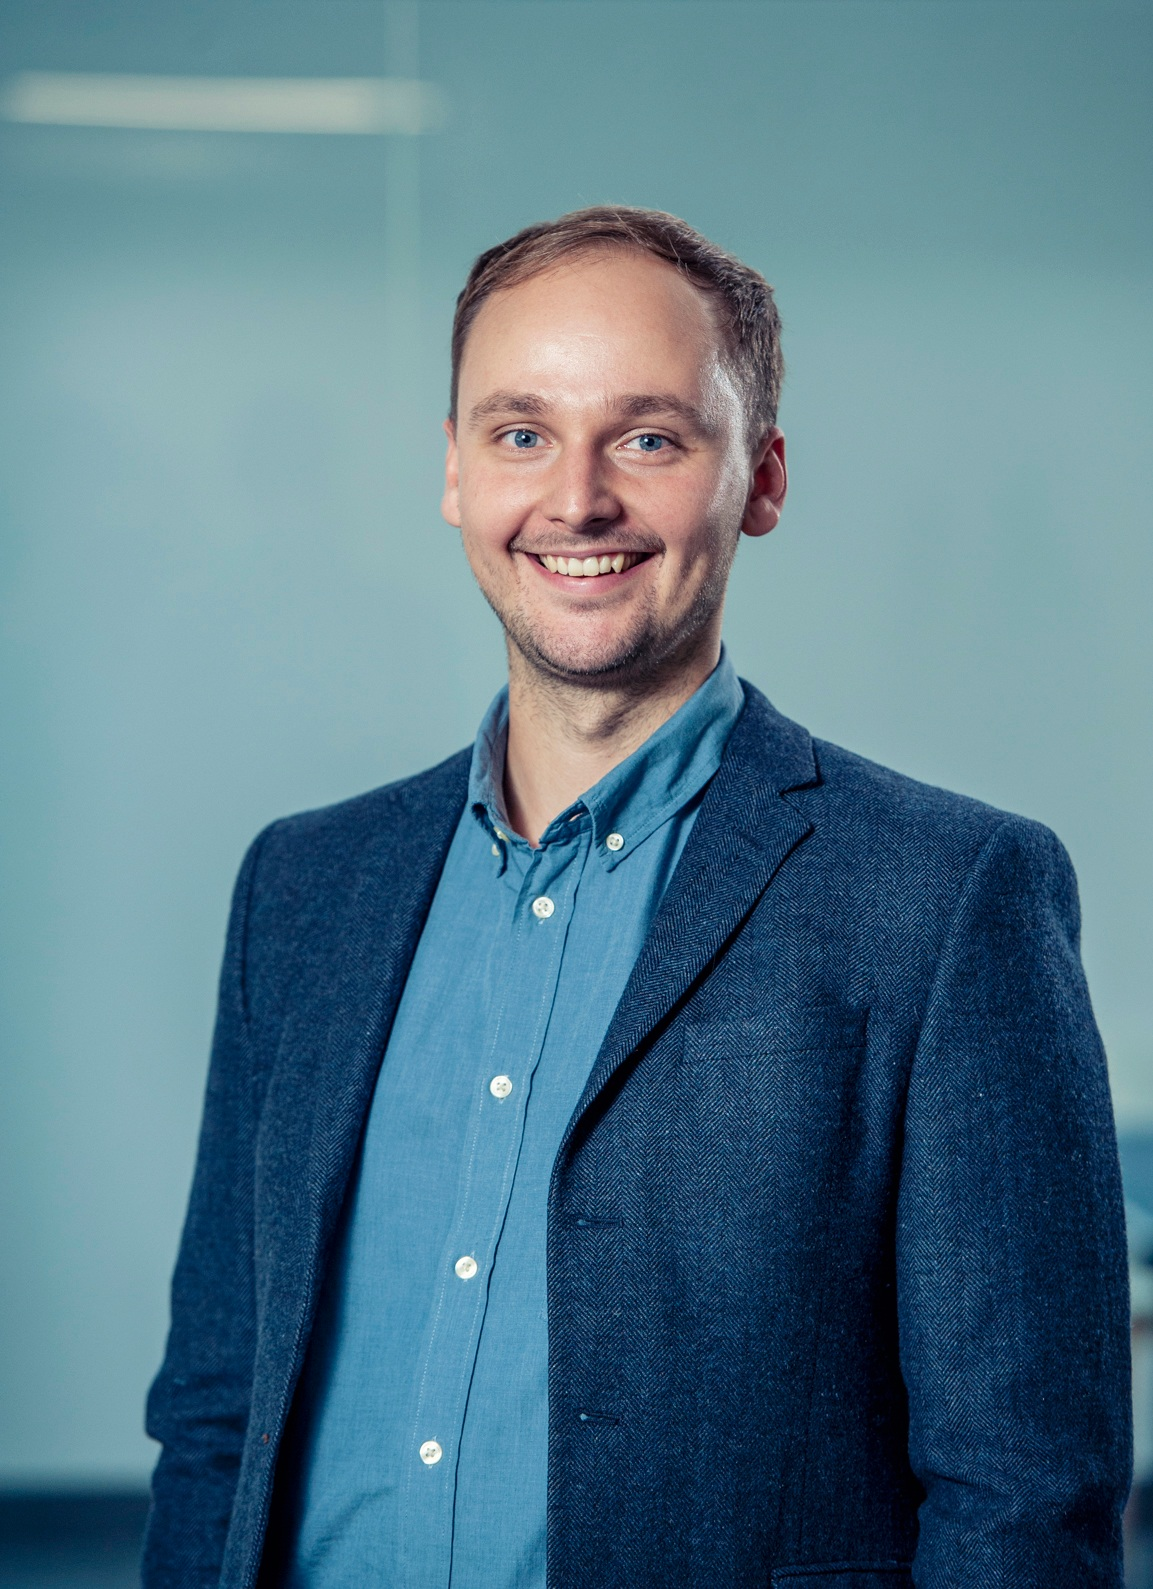 """""""Novum Bank is on the cutting edge of technology and it is fascinating to work with their data science team. We strongly believe that the future of credit scoring is in the ability to leverage the opportunities of Open Banking. Our partnership with Novum Bank is a great example of this."""" - Rolands Mesters, Nordigen CEO"""